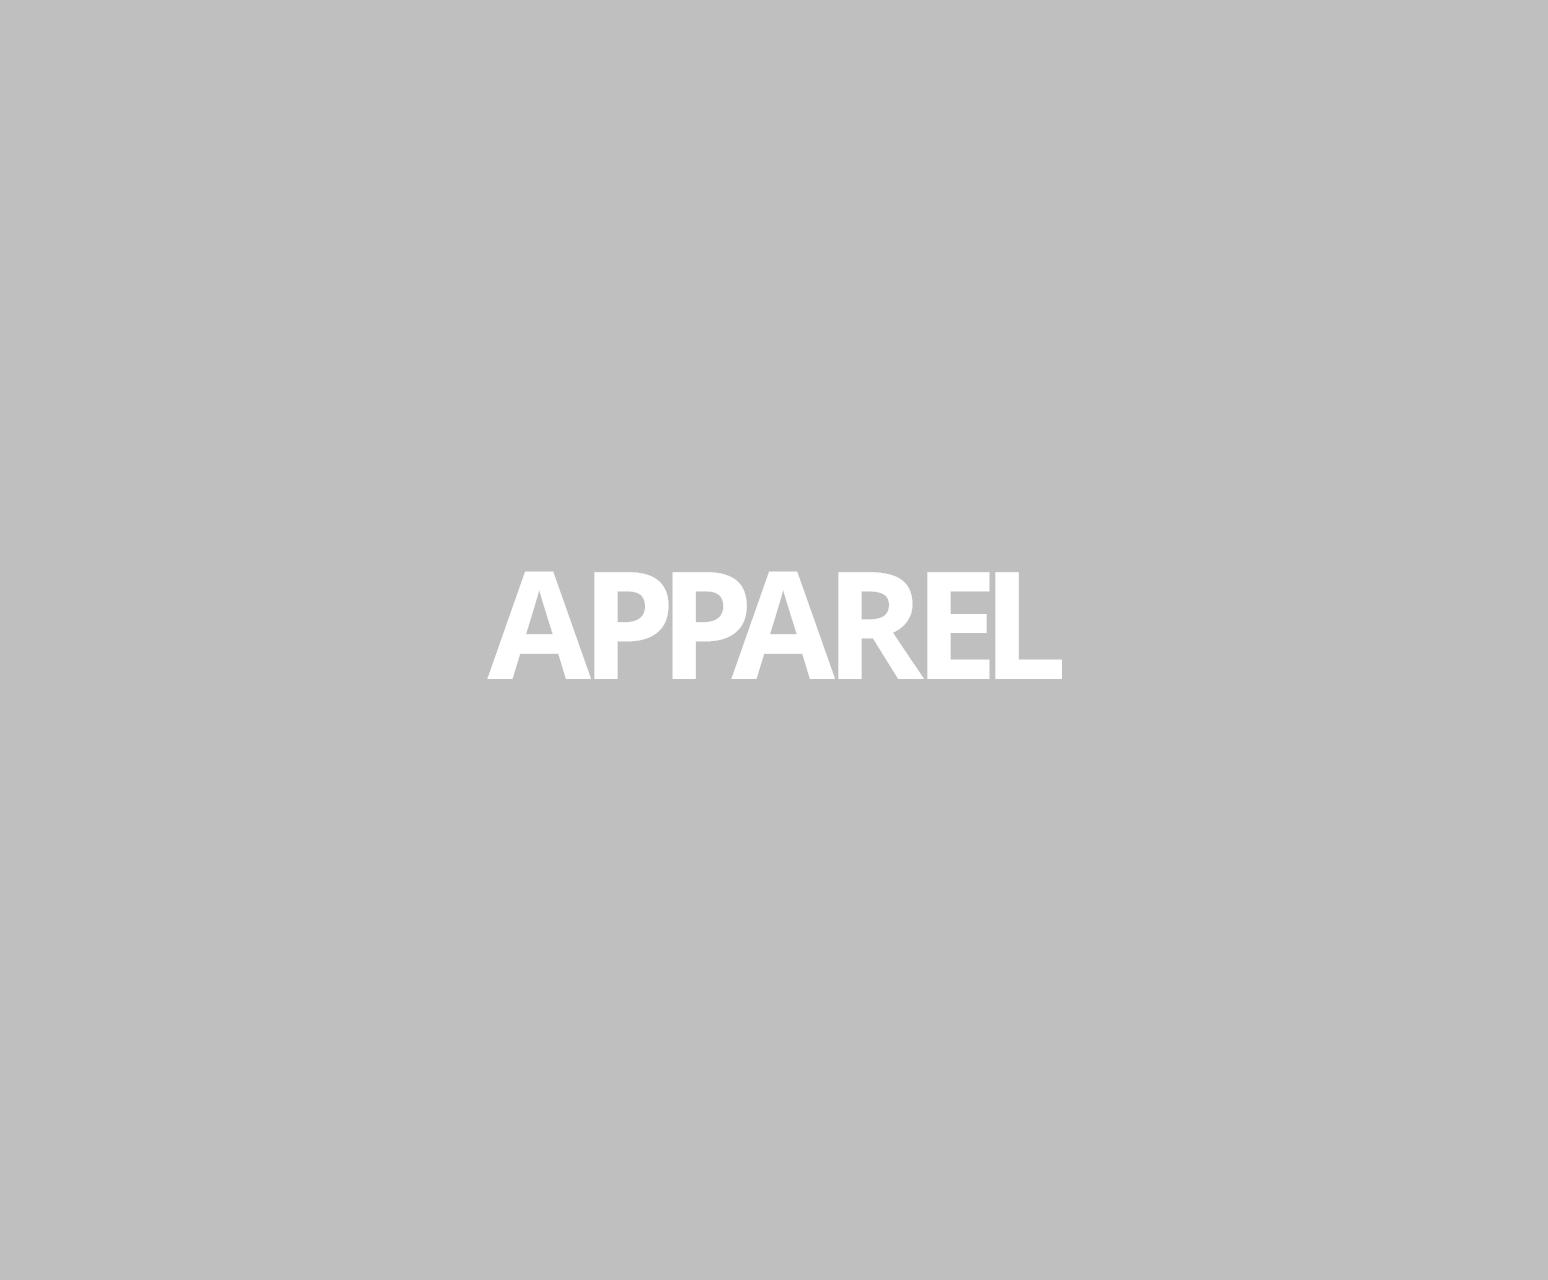 APPAREL-TEXT-1